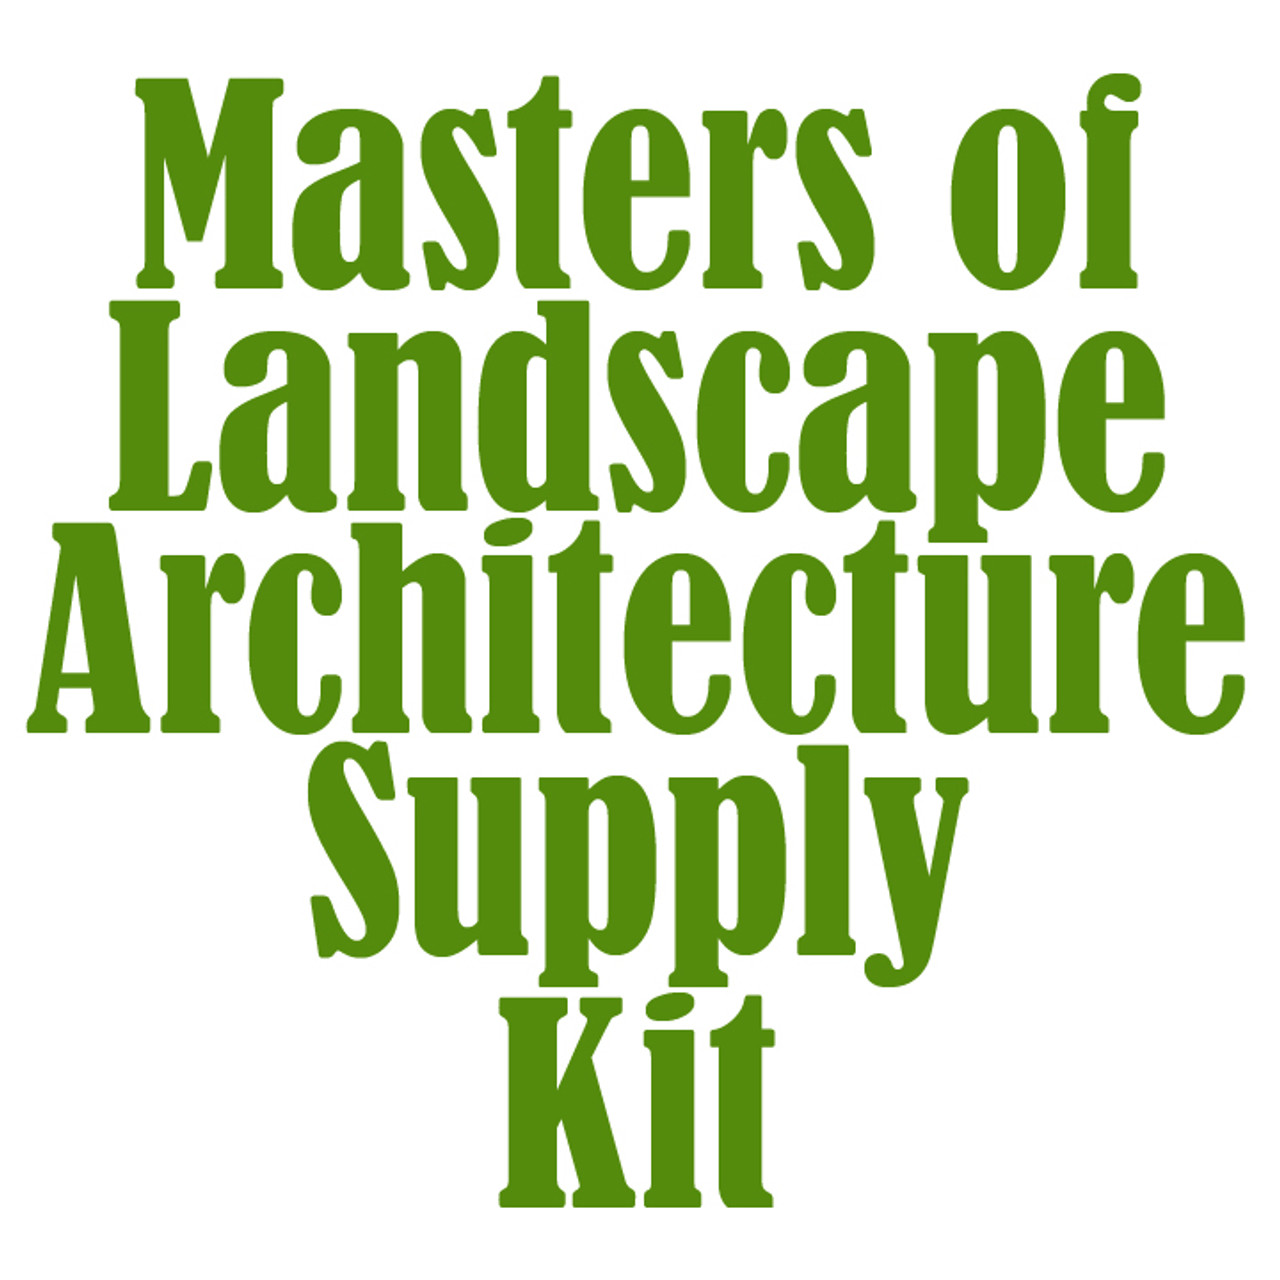 University of Colorado at Denver Masters of Landscape Architecture Supply Kit